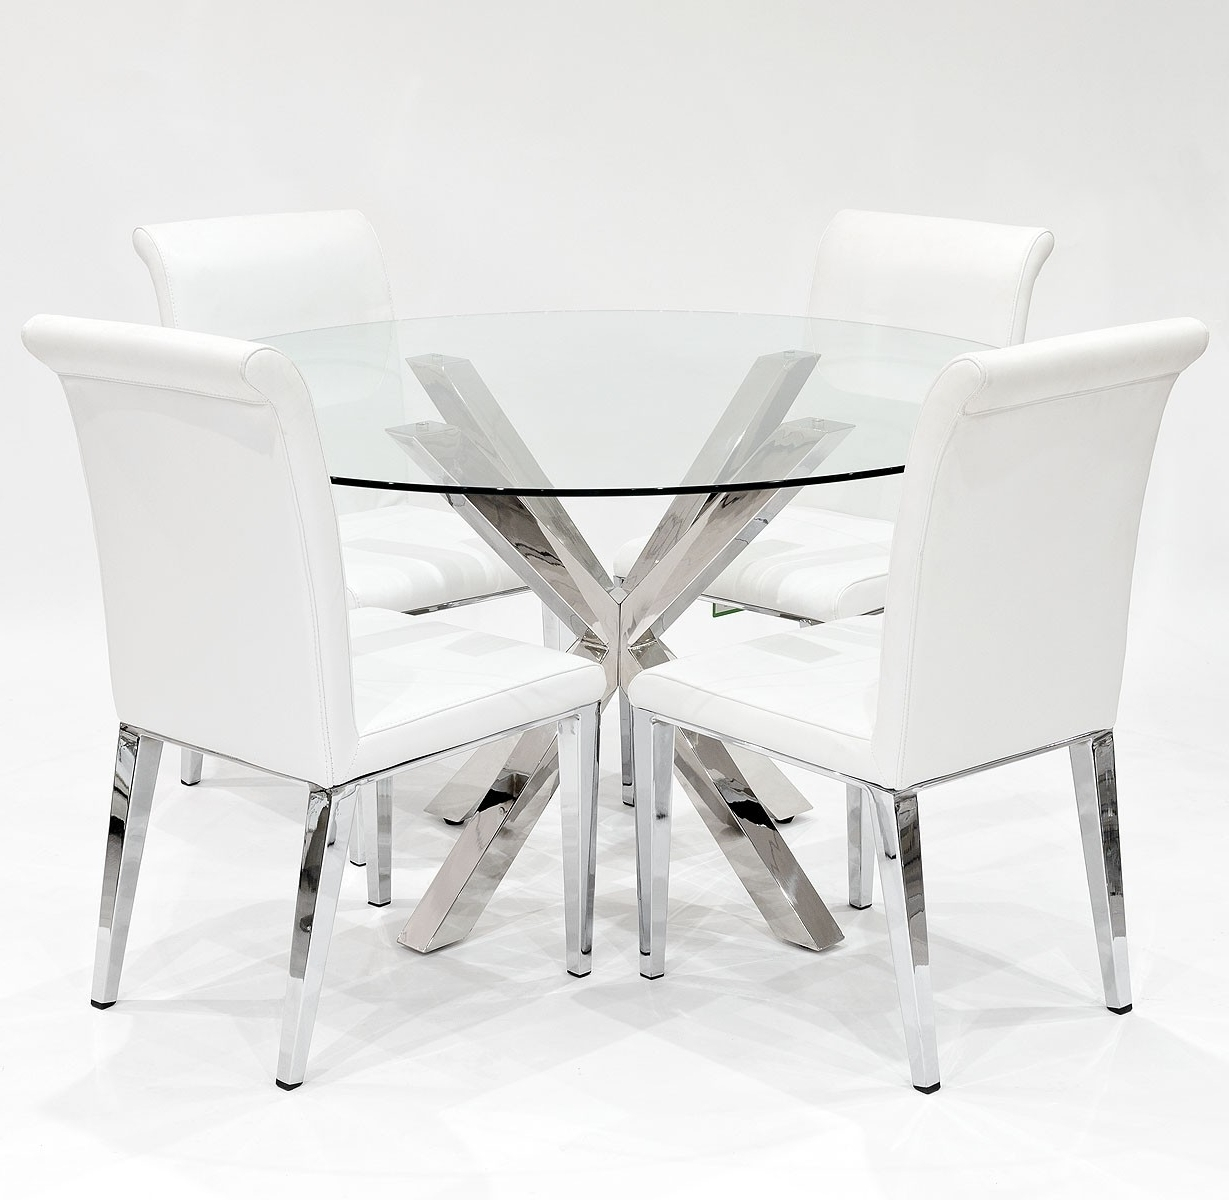 Most Recent Crossly And White Kirkland Dining Set – Be Fabulous! With White Dining Sets (View 15 of 25)